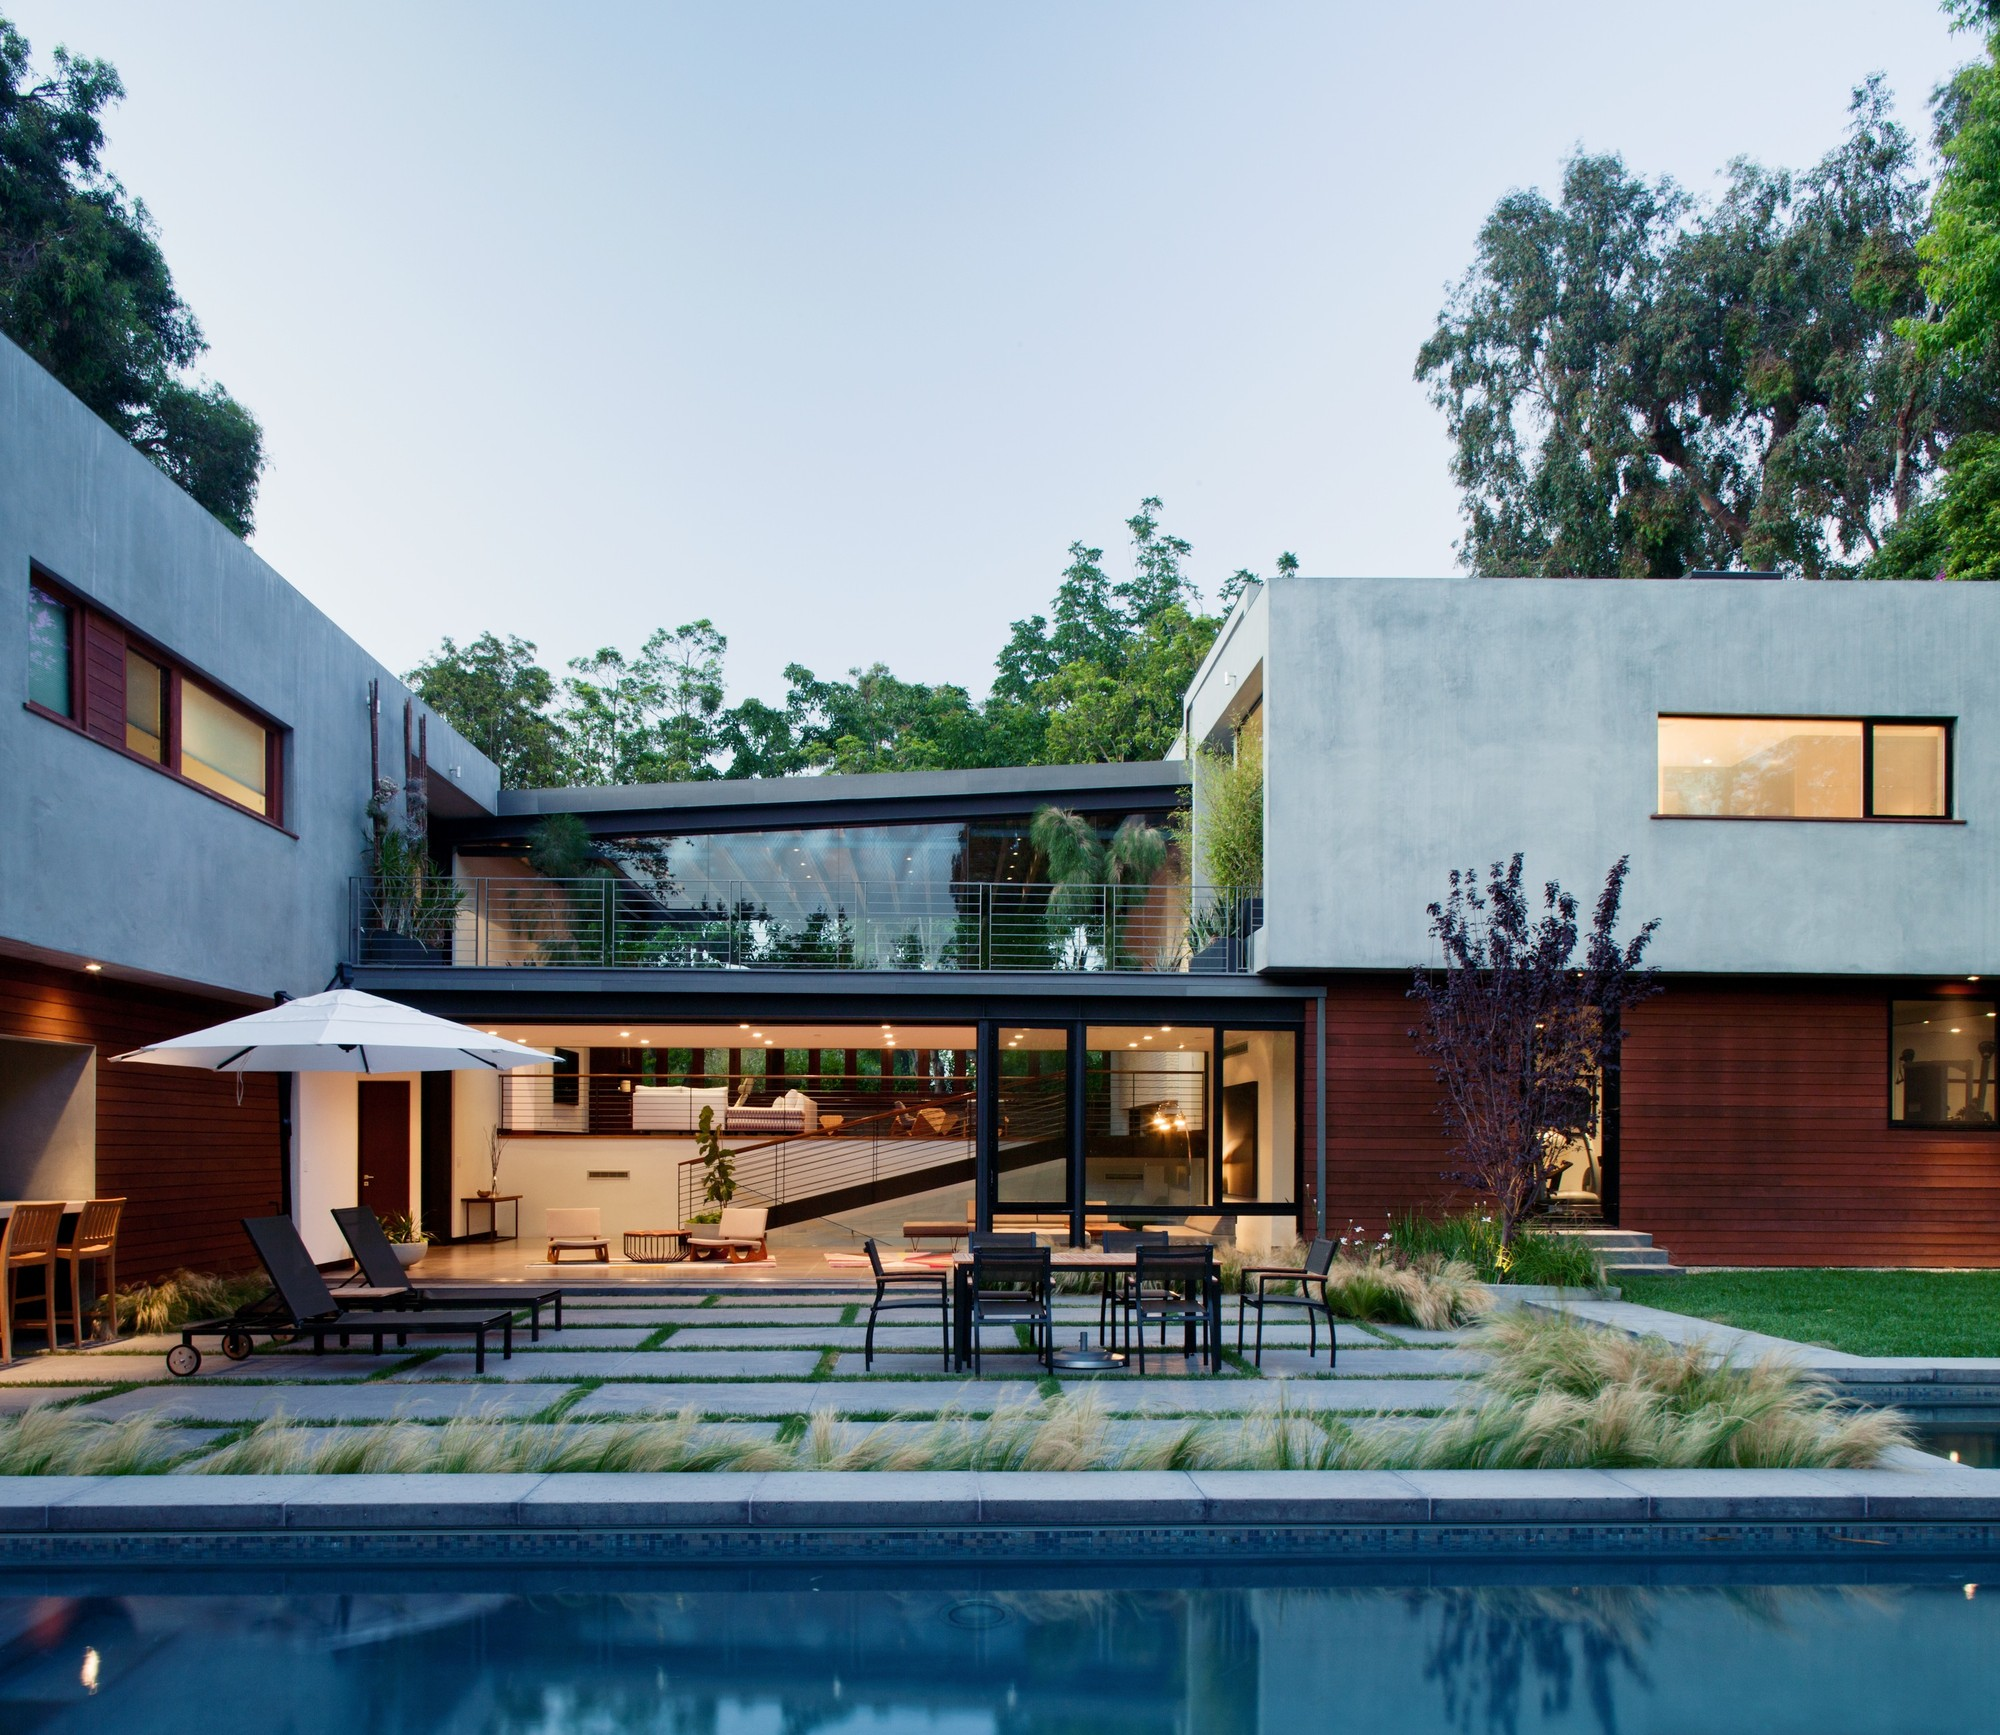 San Lorenzo Residence / Mike Jacobs Architecture, © Michael Wells